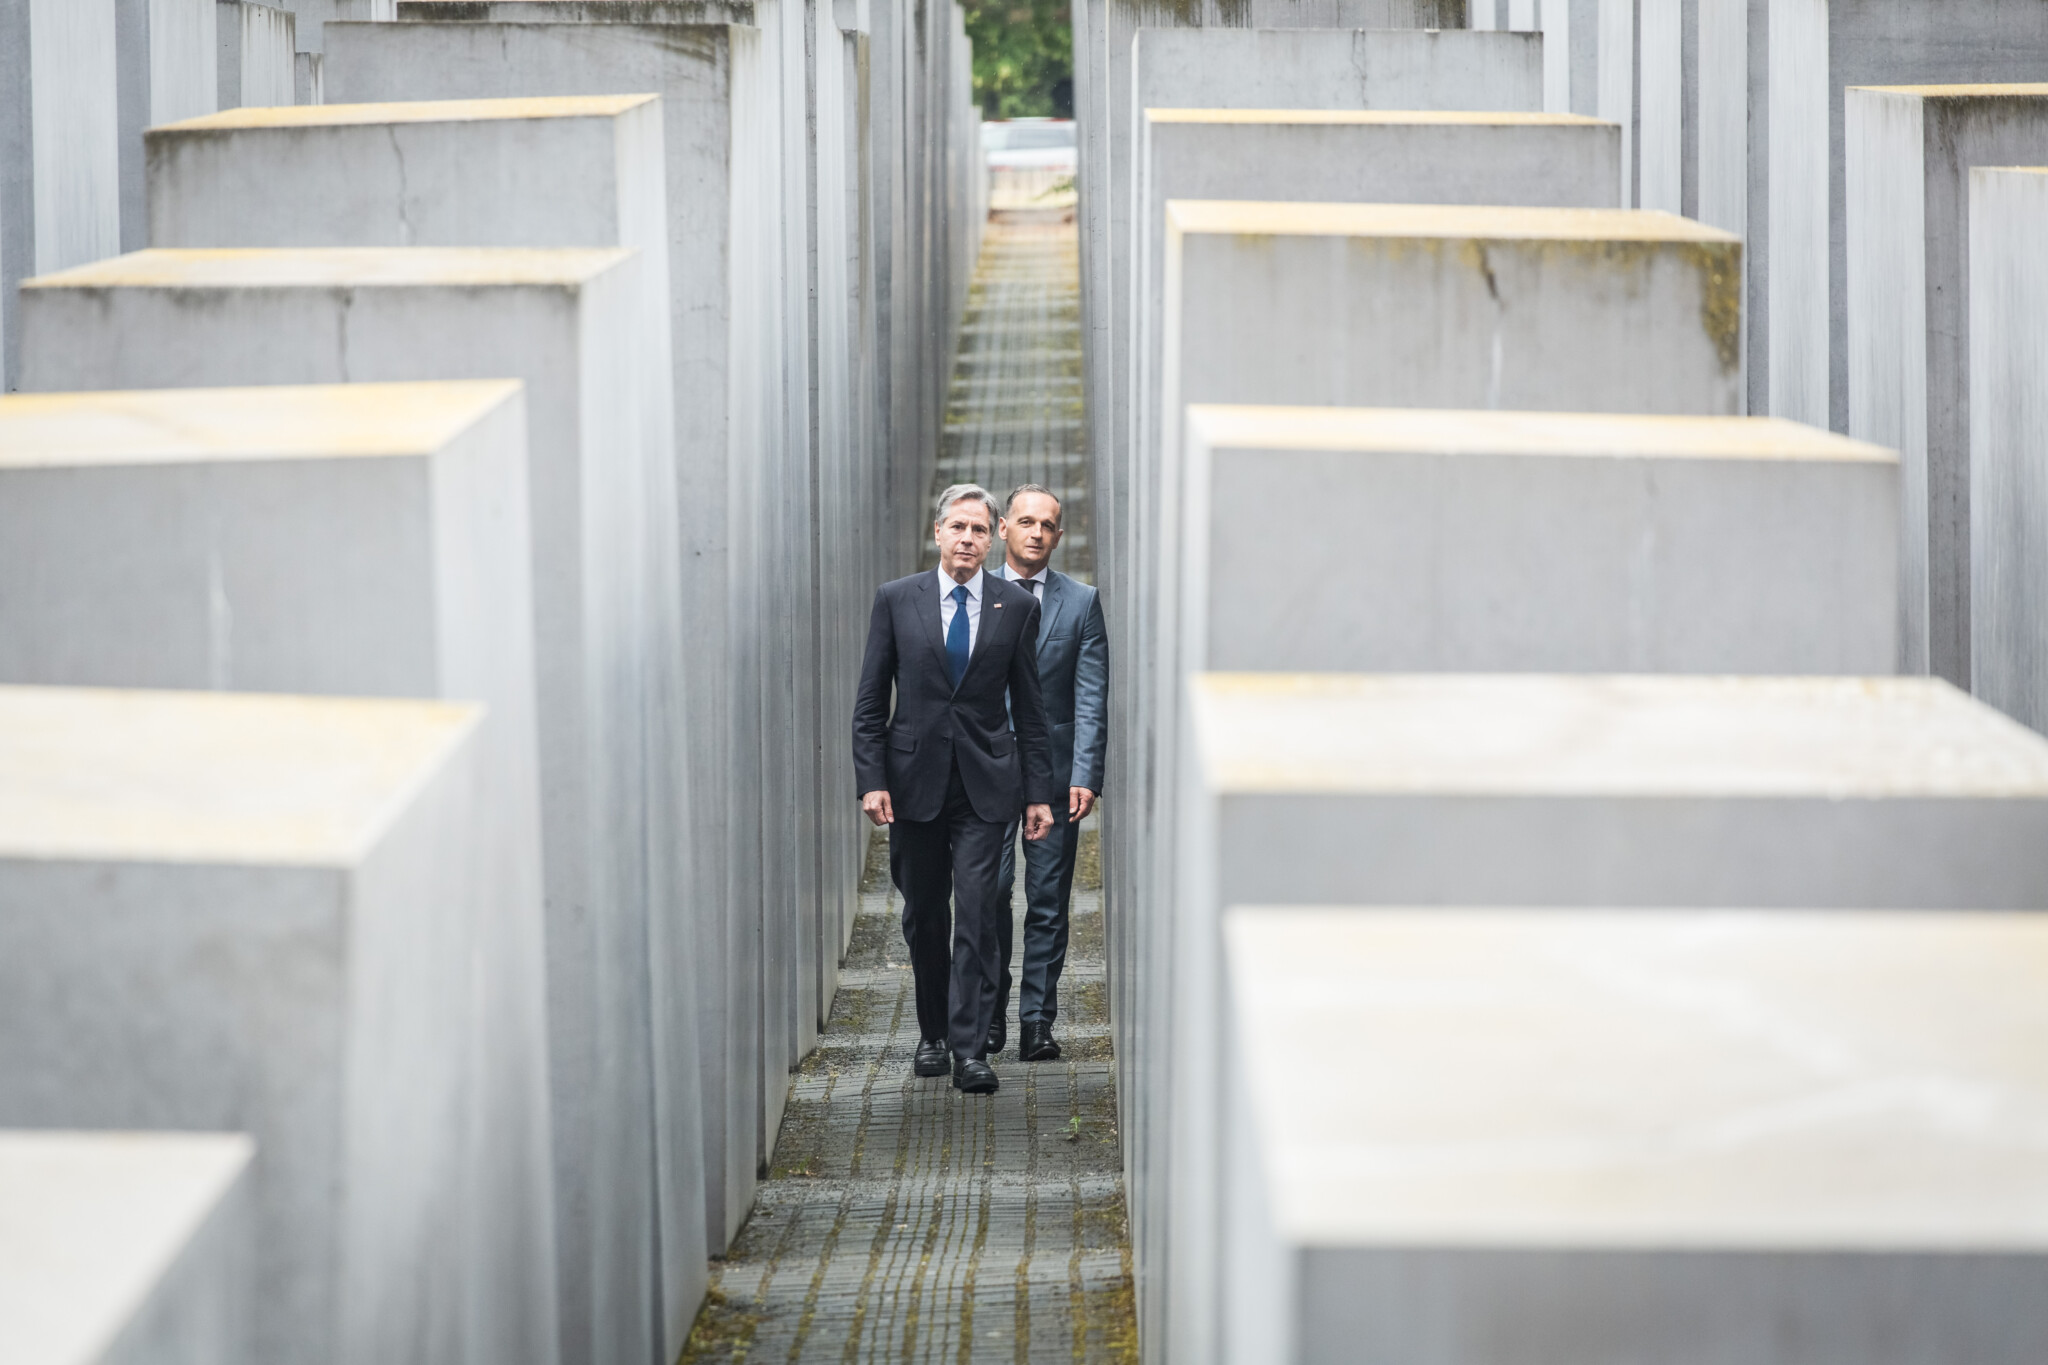 US Secretary of State Antony J. Blinken and Federal Foreign Minister Heiko Maas visit the Holocaust Memorial